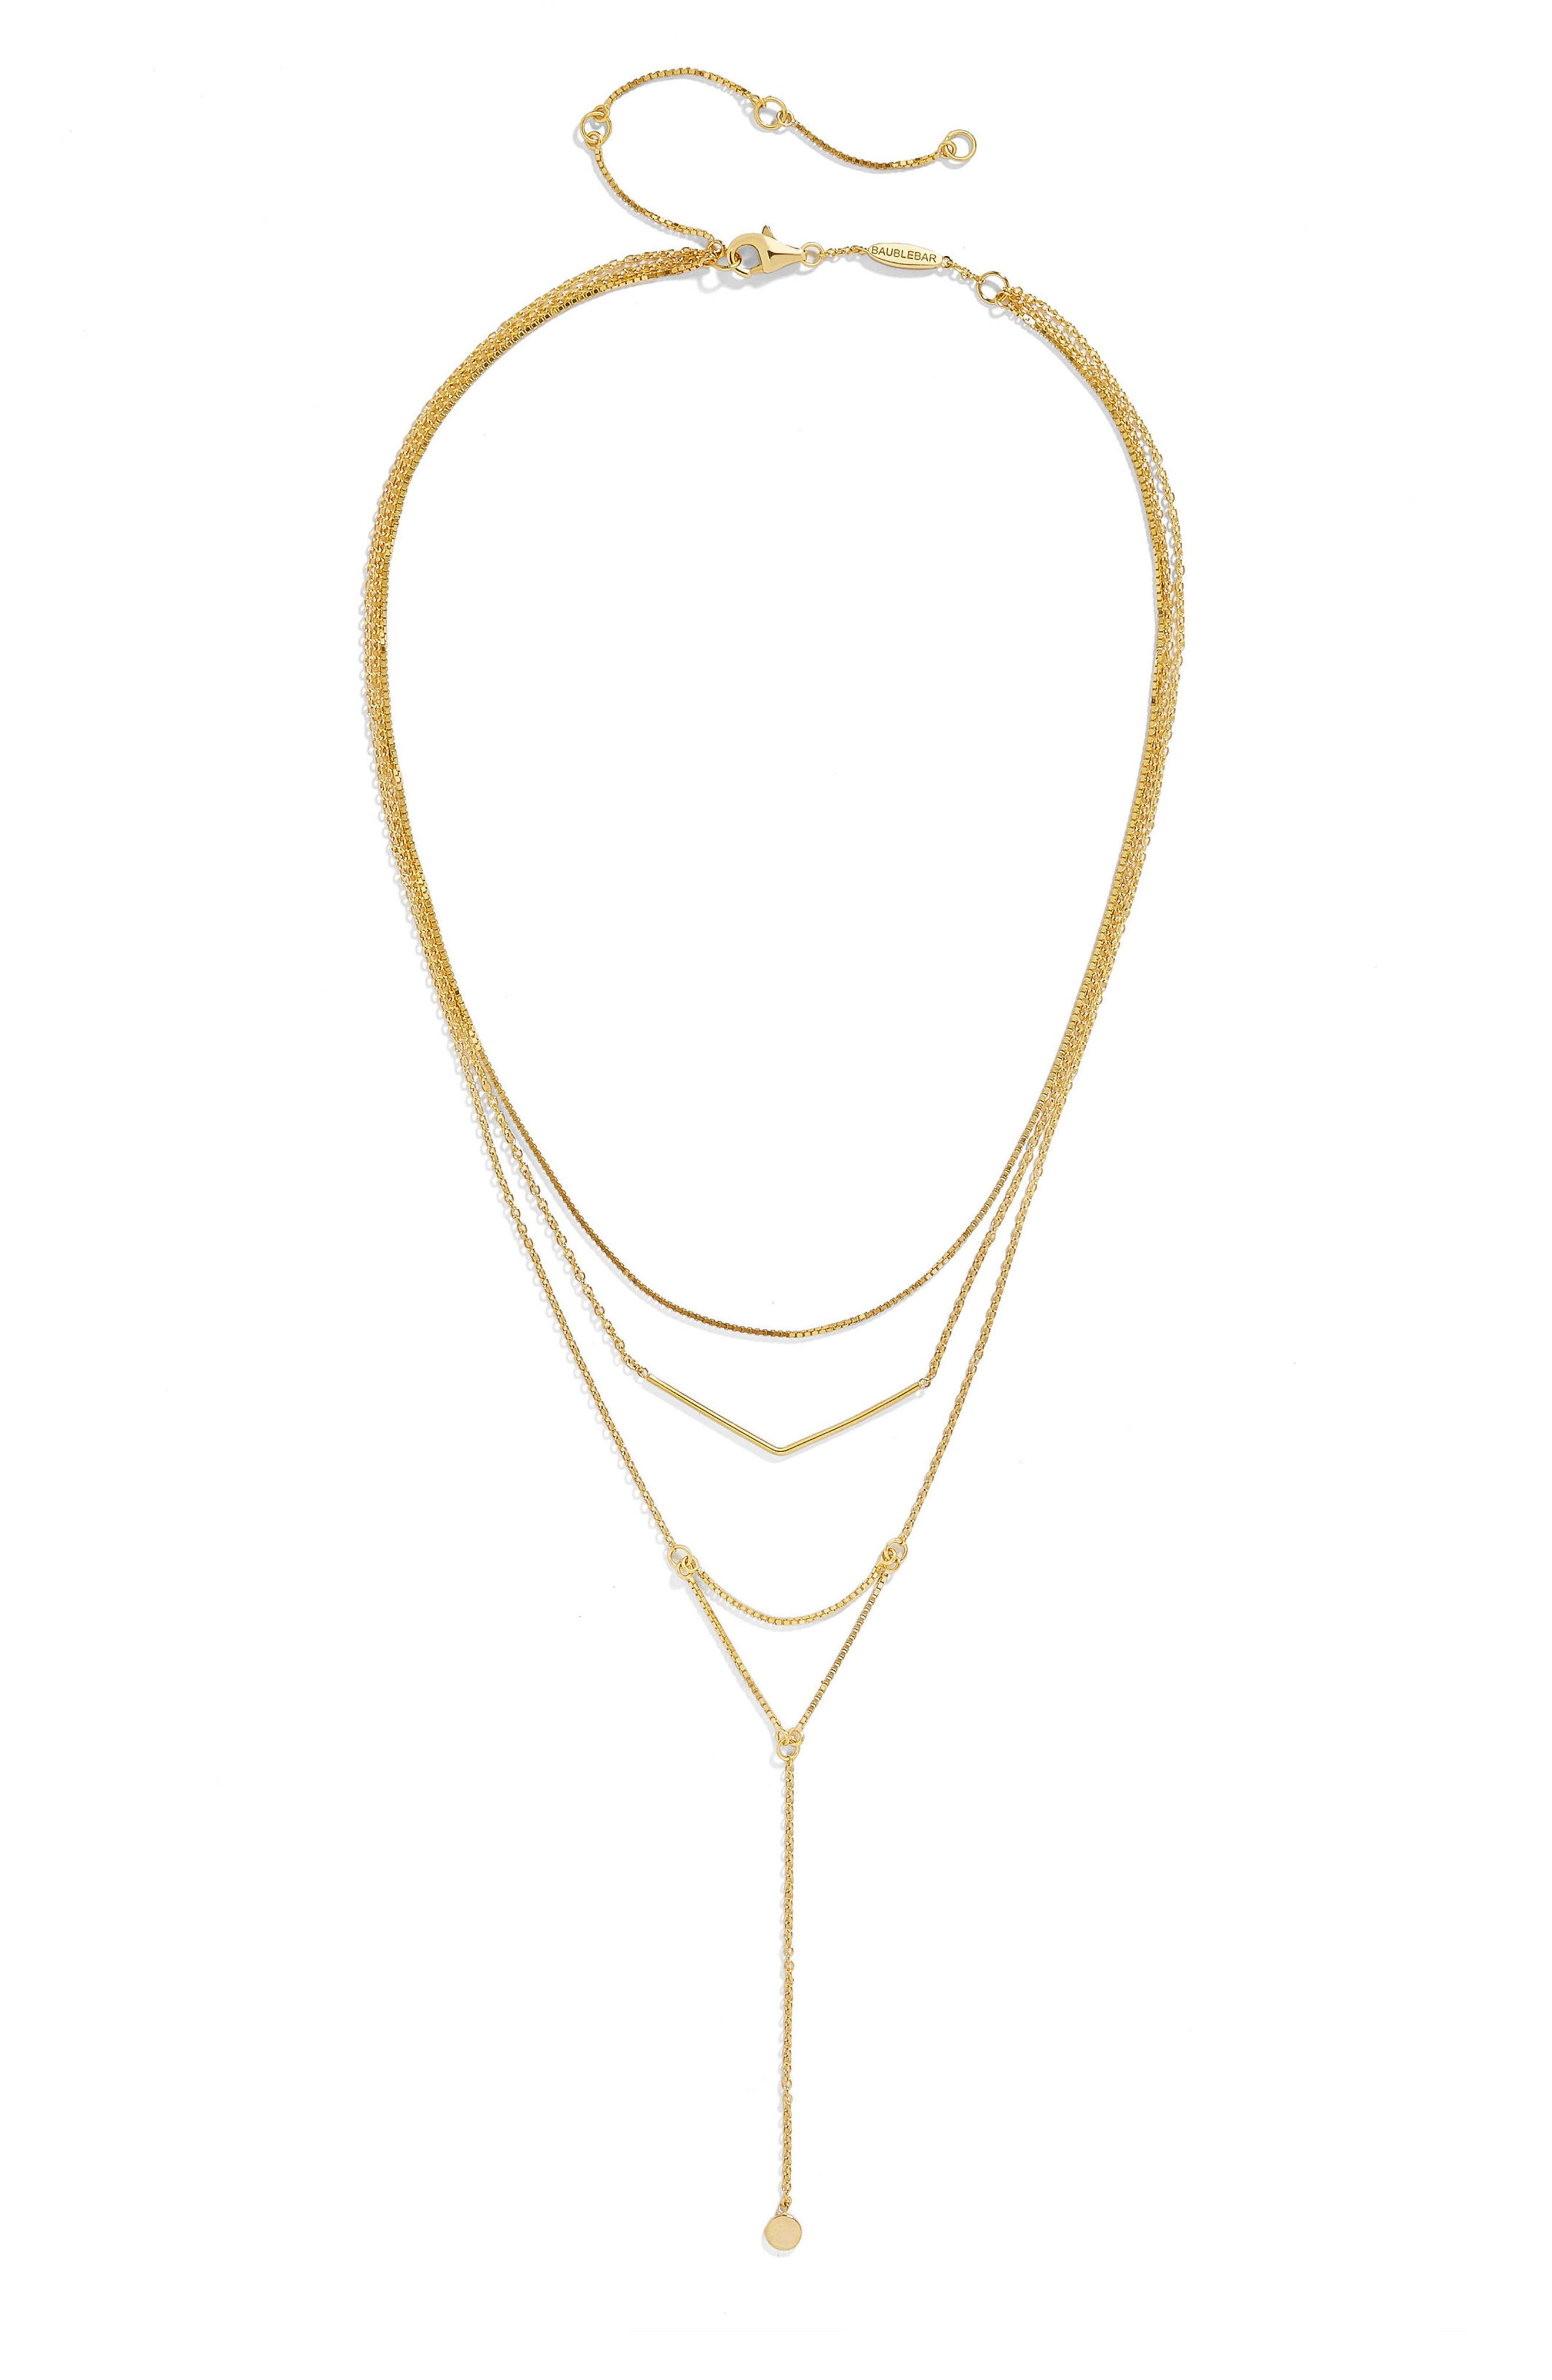 Alternate Image 1 Selected - BaubleBar Tris Everyday Connected Y 18-Karat Gold Plate Necklace